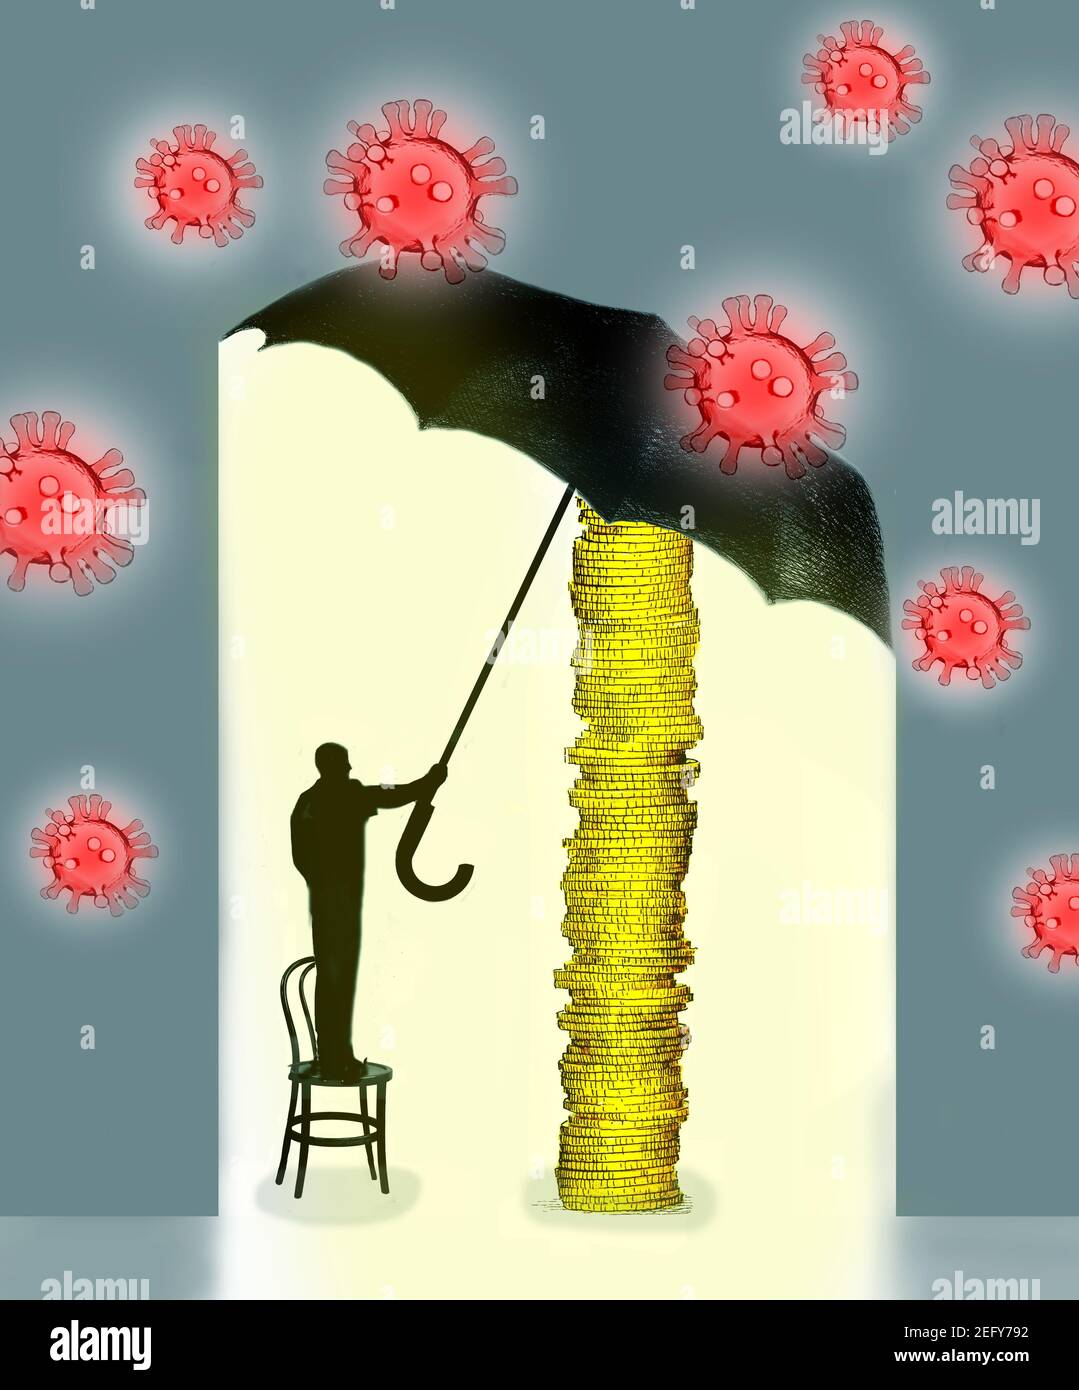 man standing on chair holding a large umbrella surrounded by coronavirus Stock Photo